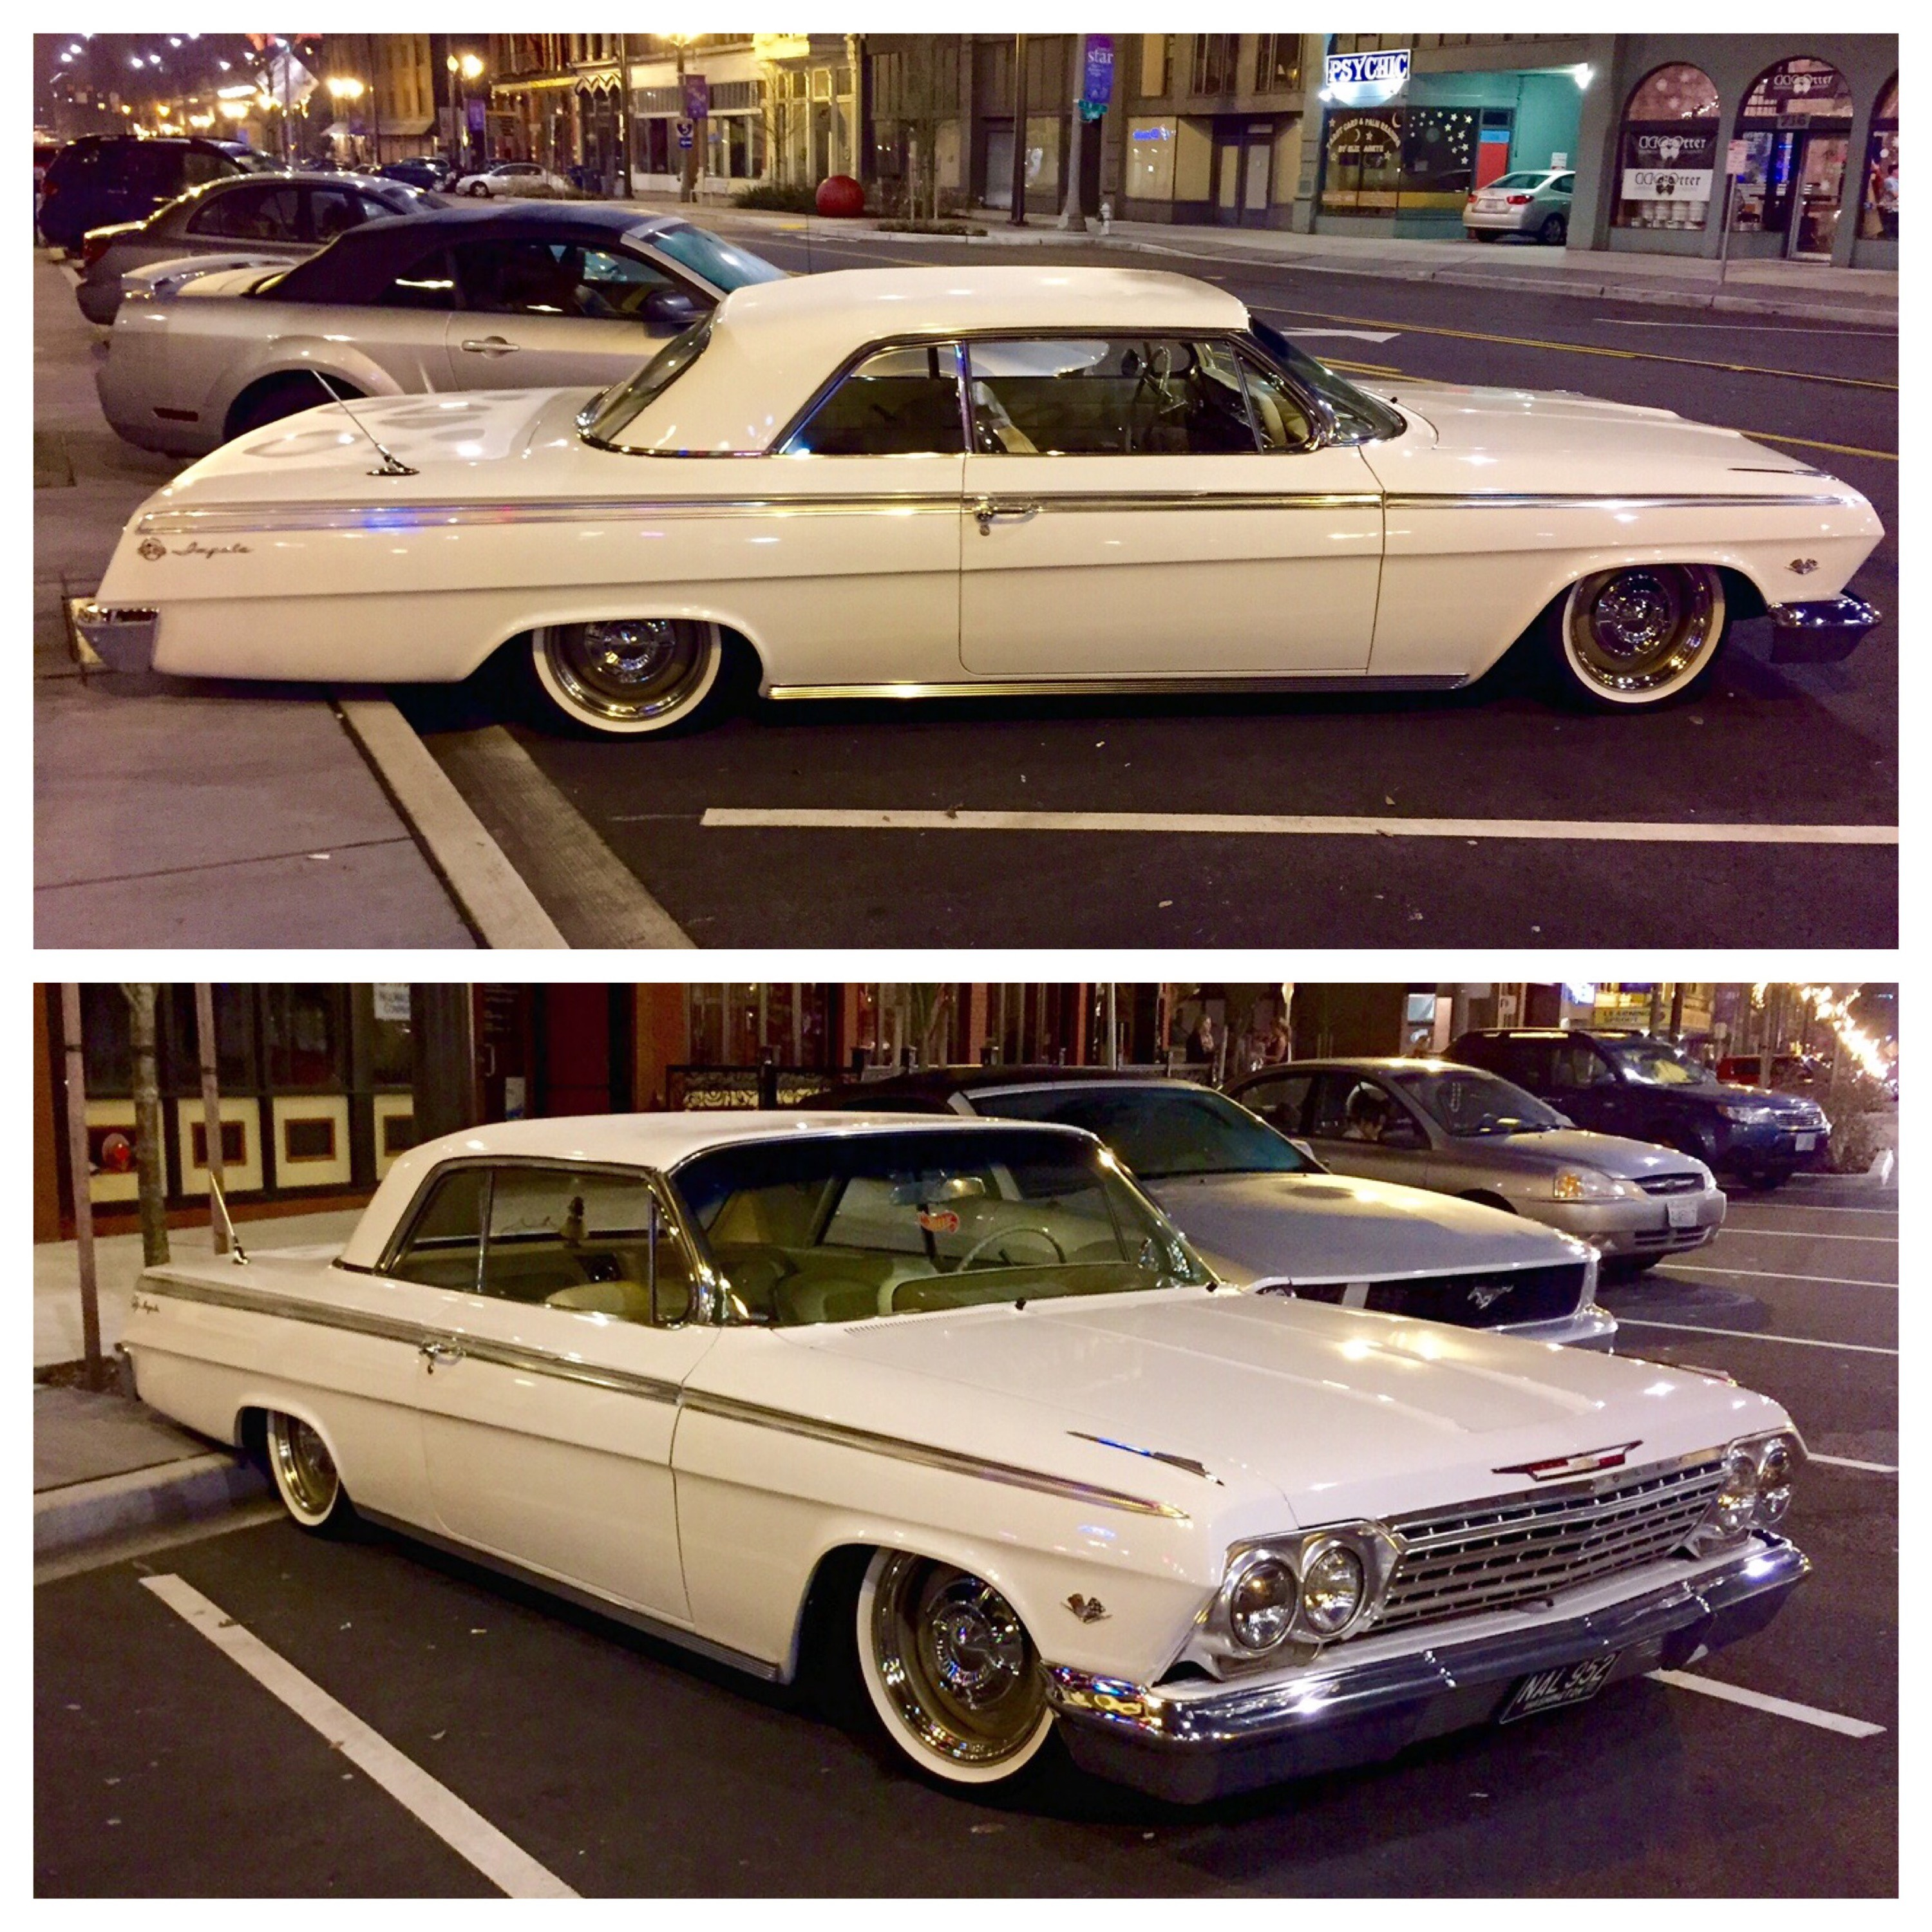 Beautiful custom '62 Impala spotted in Tacoma, WA